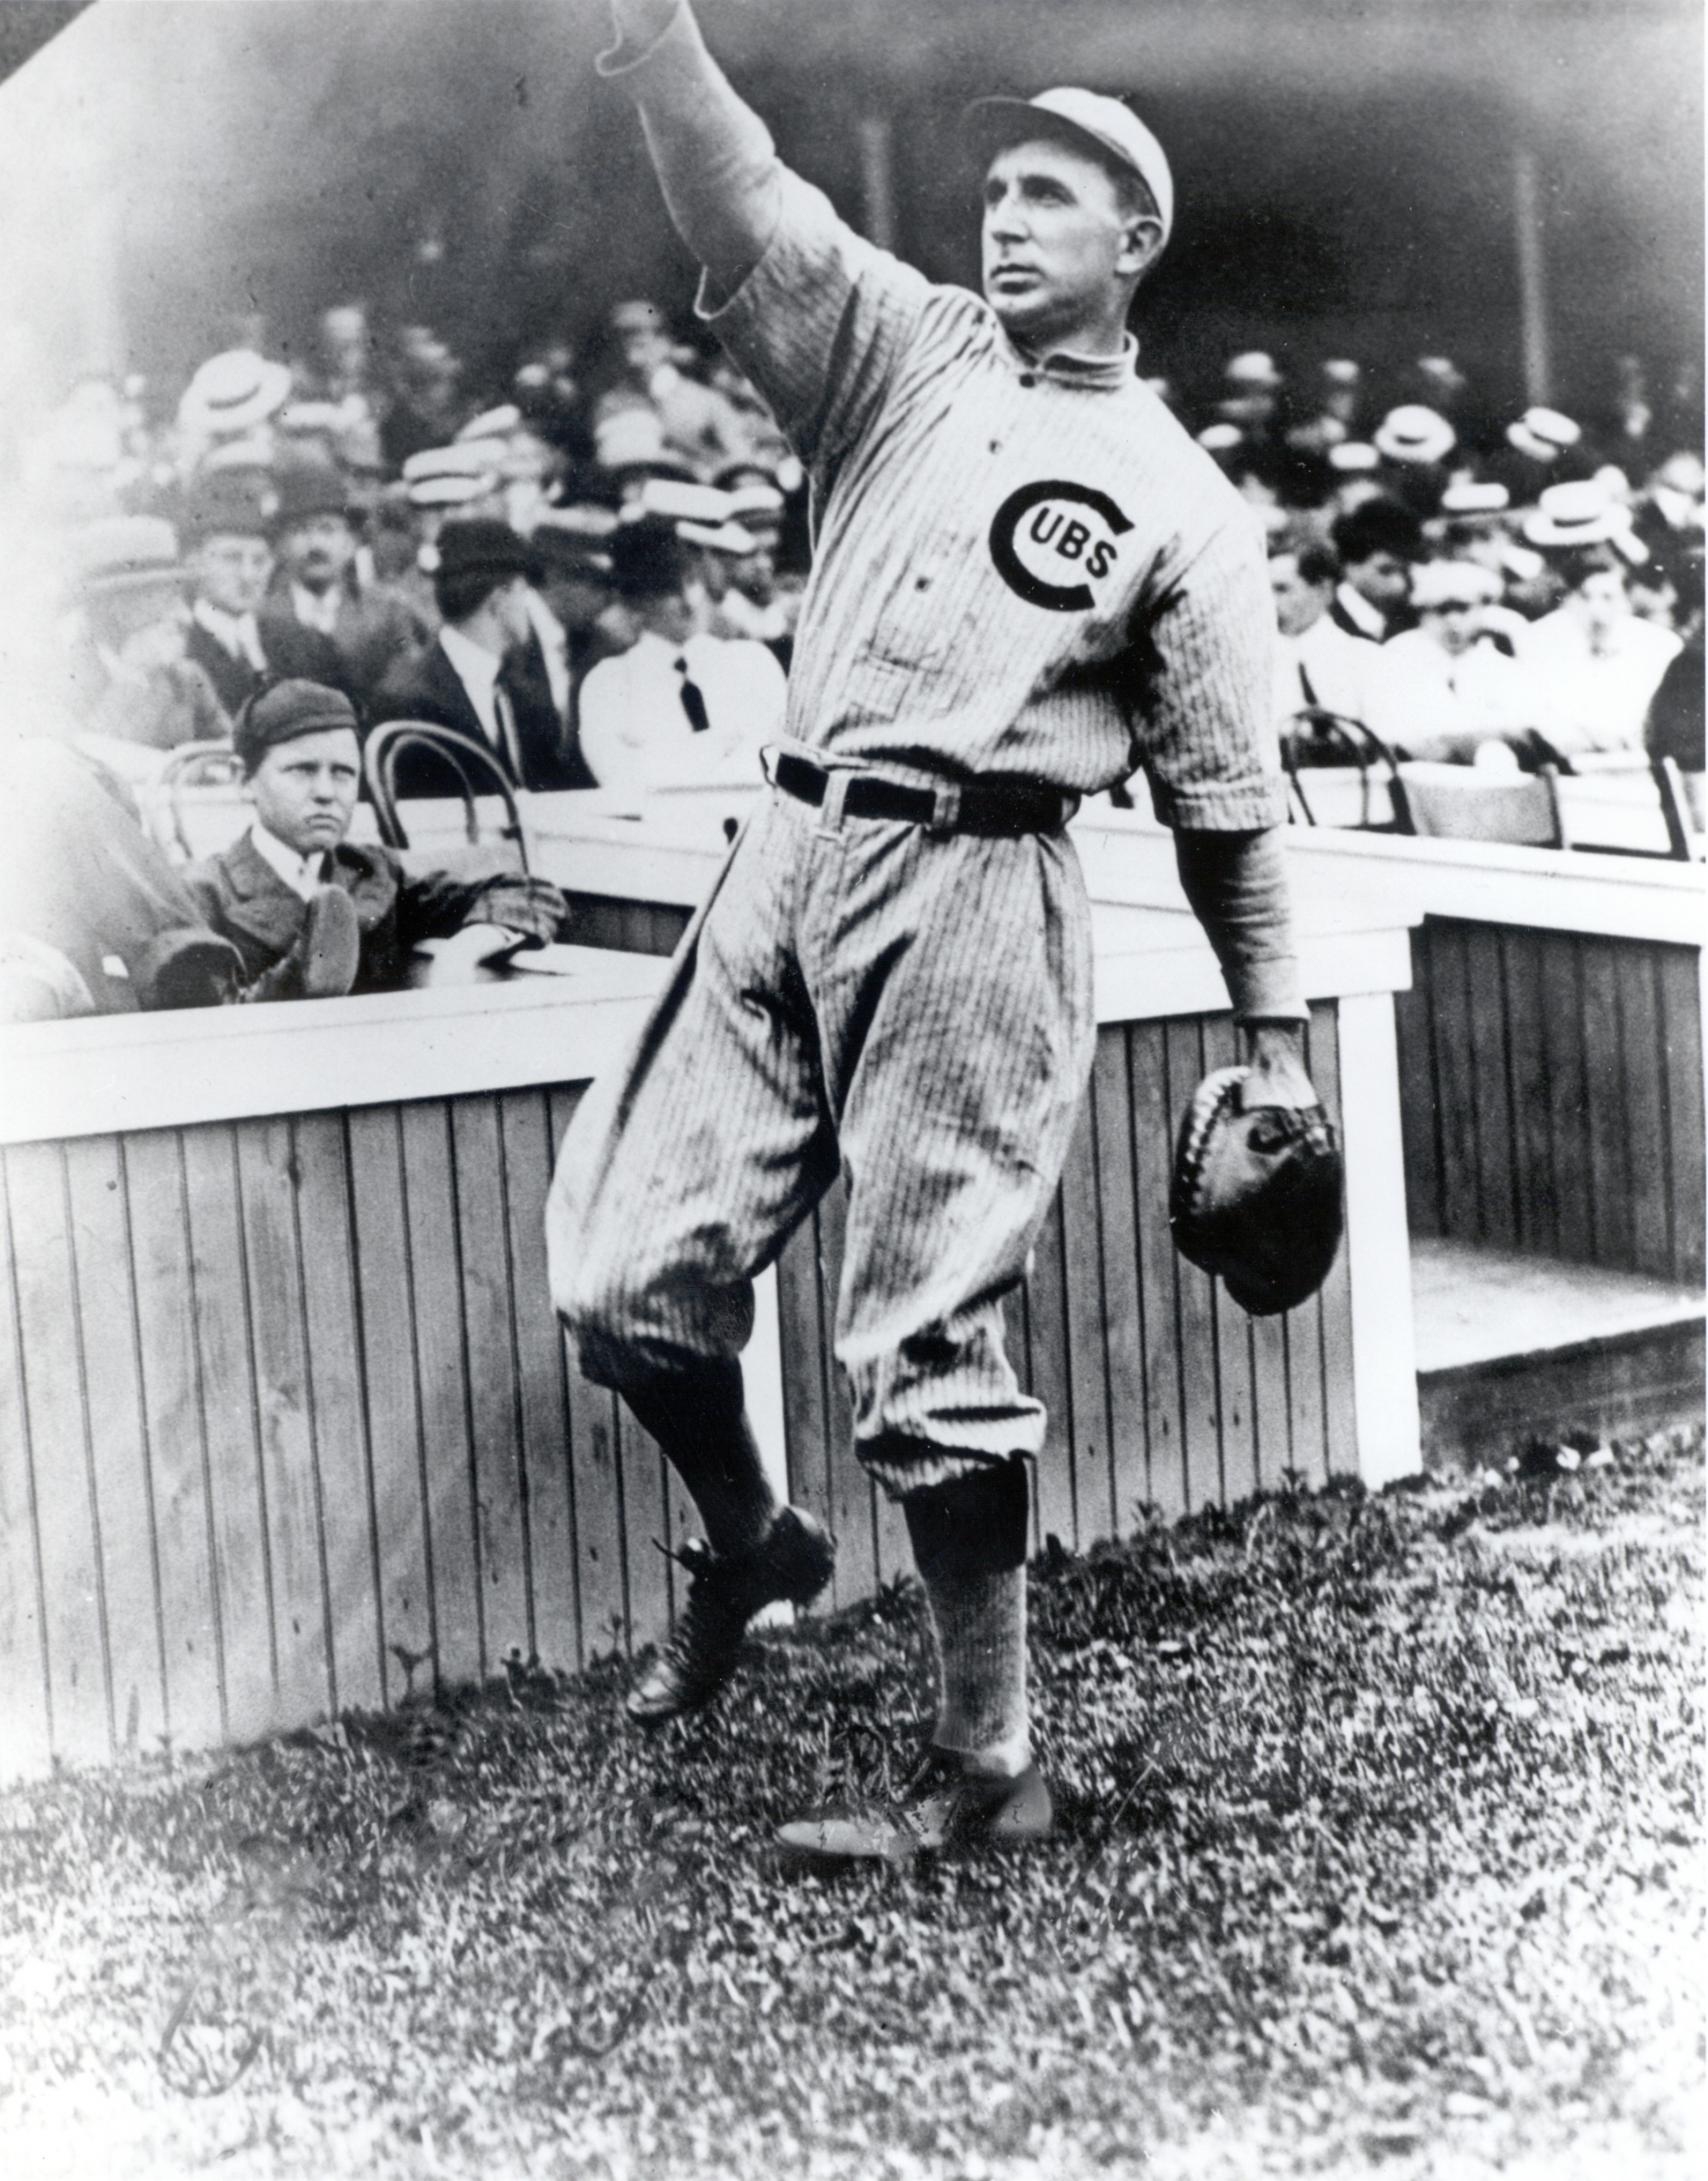 Shown in 1910, when he returned to the Cubs after holding out for a full season. An inconsistent but often excellent hitter, Kling was prized for his acumen, grit, and knowledge of pitchers.